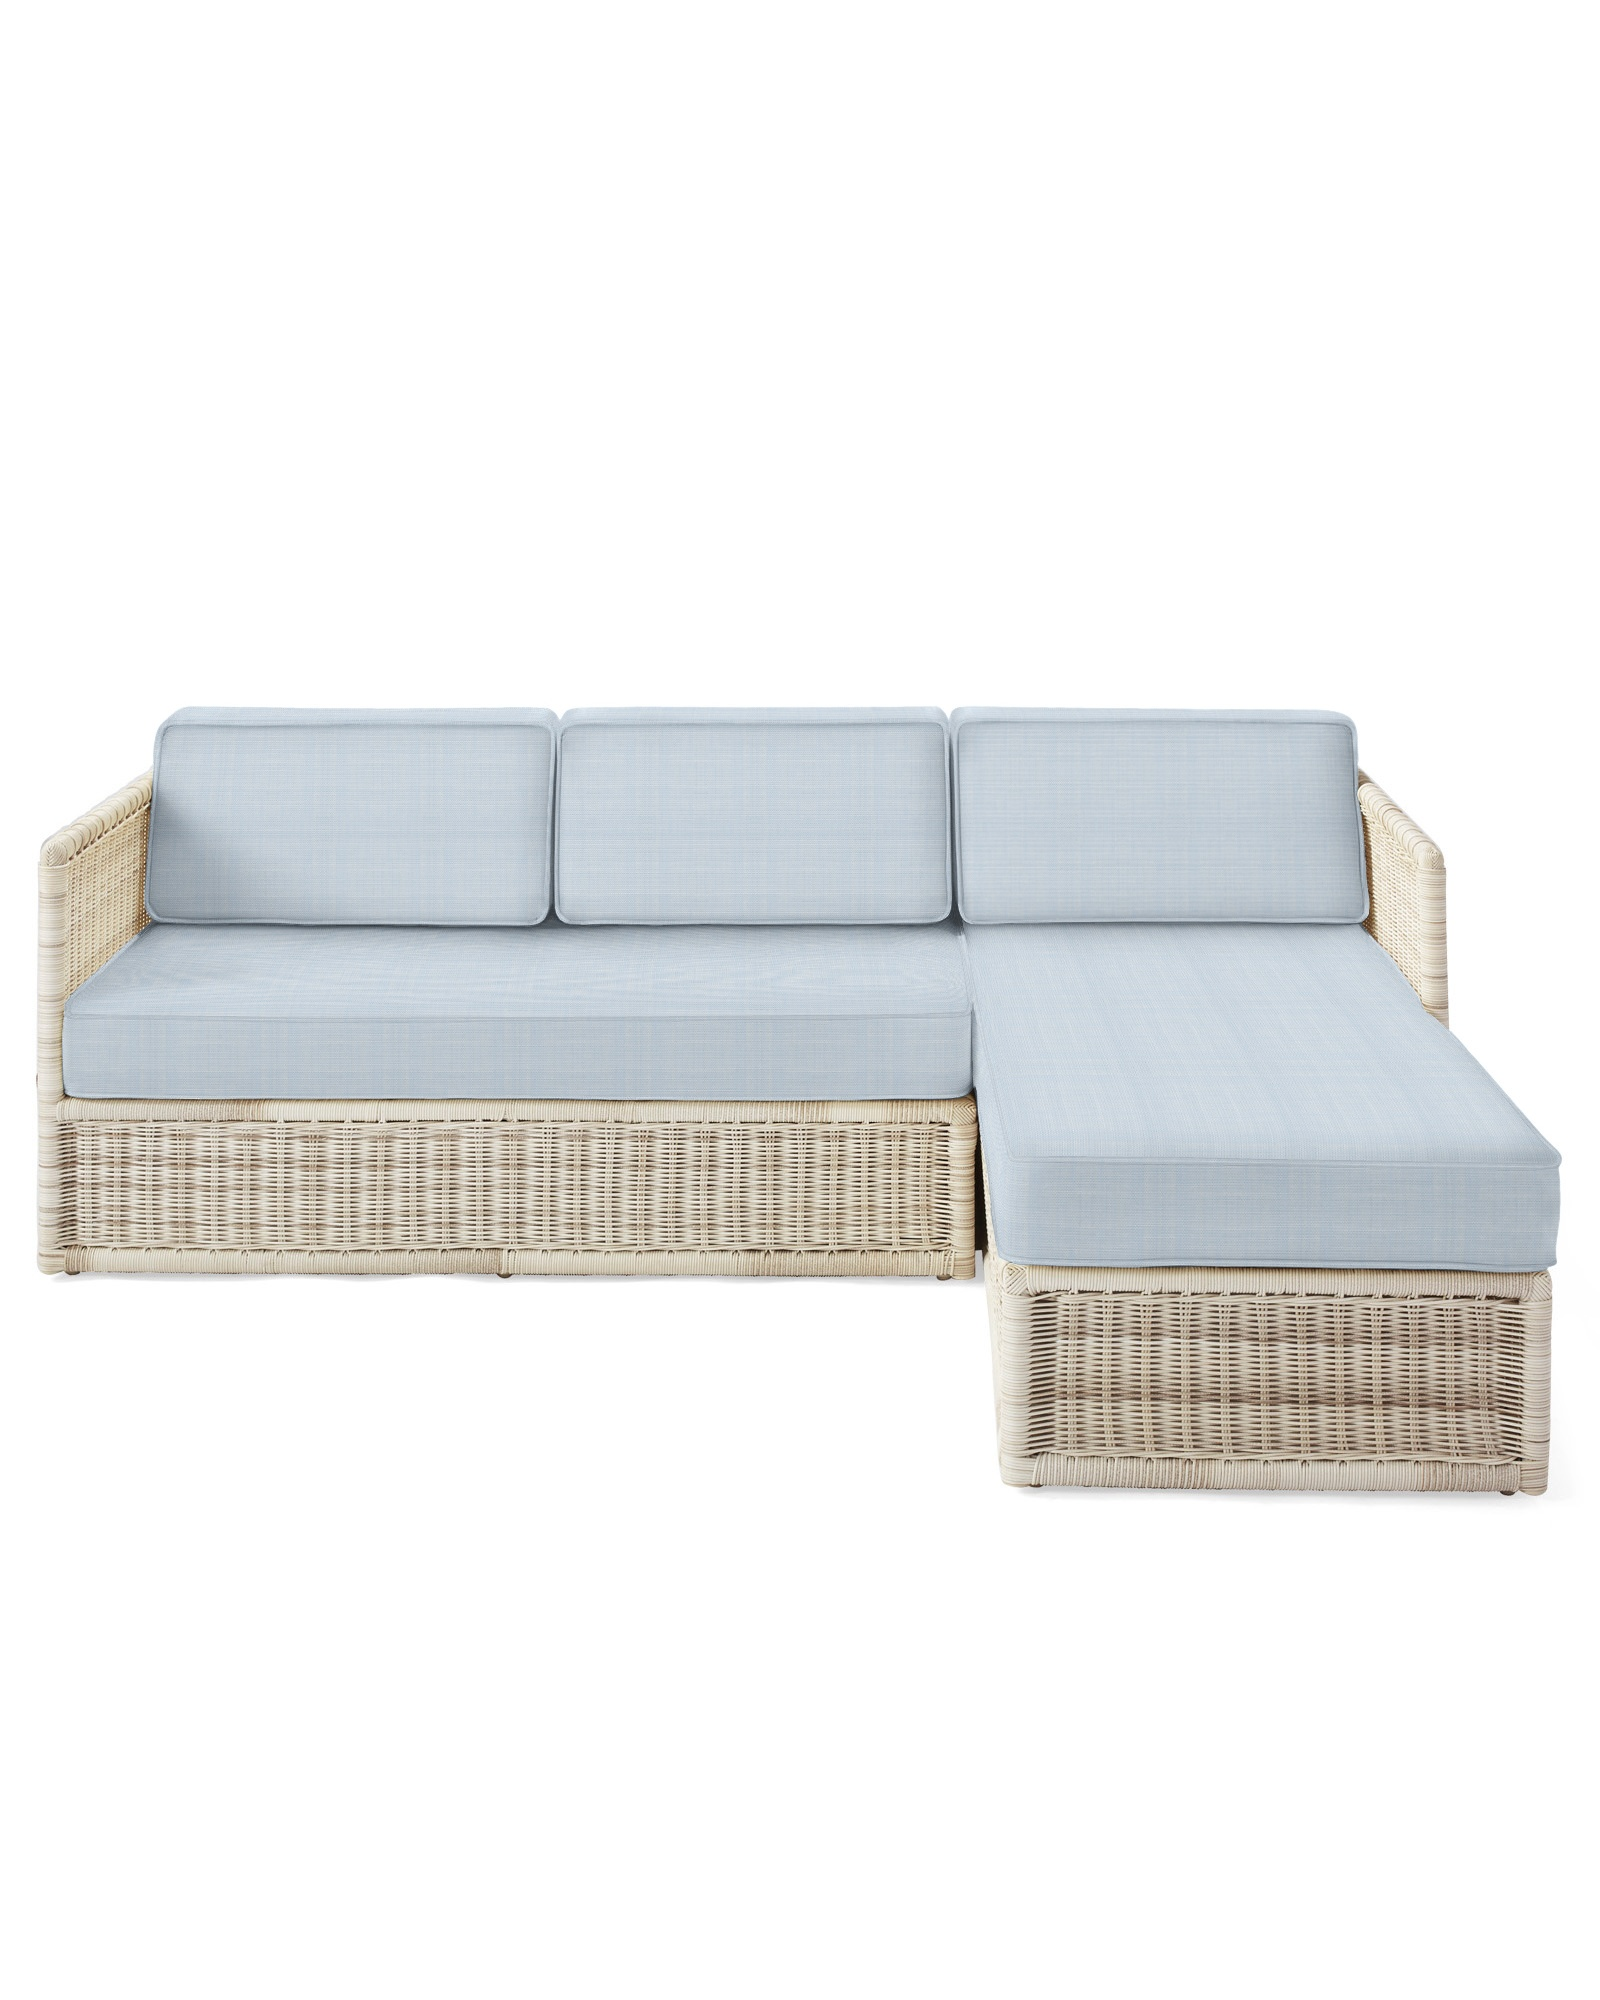 Cushion Cover for Pacifica Chaise Sectional, Perennials Basketweave Coastal Blue